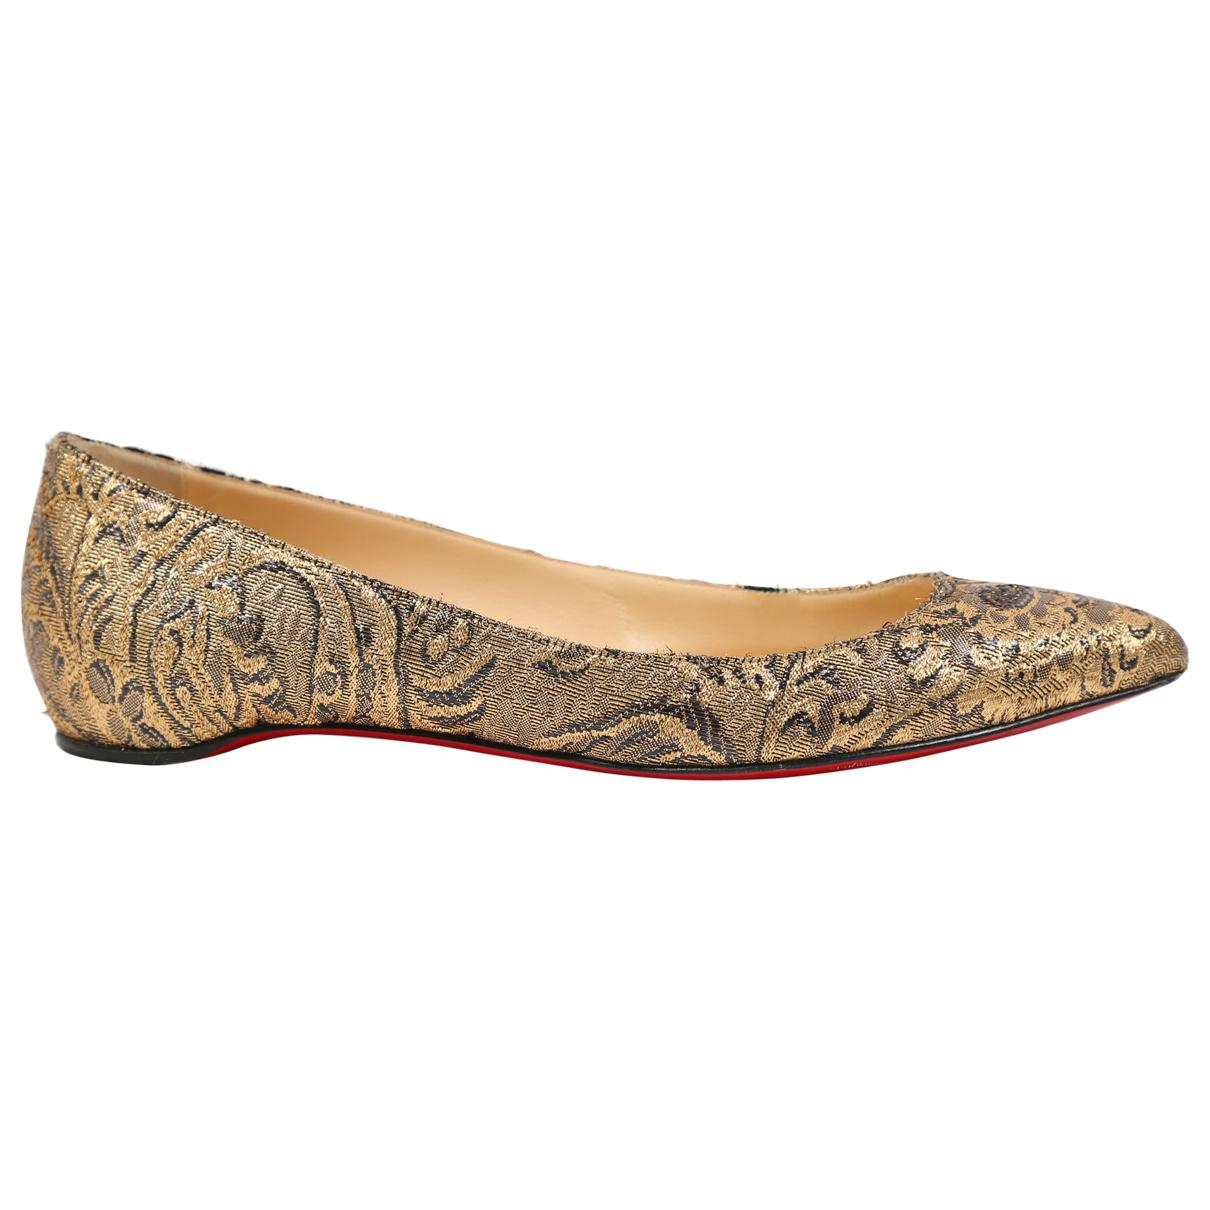 Pre-owned - Cloth ballet flats Christian Louboutin ZpS6c